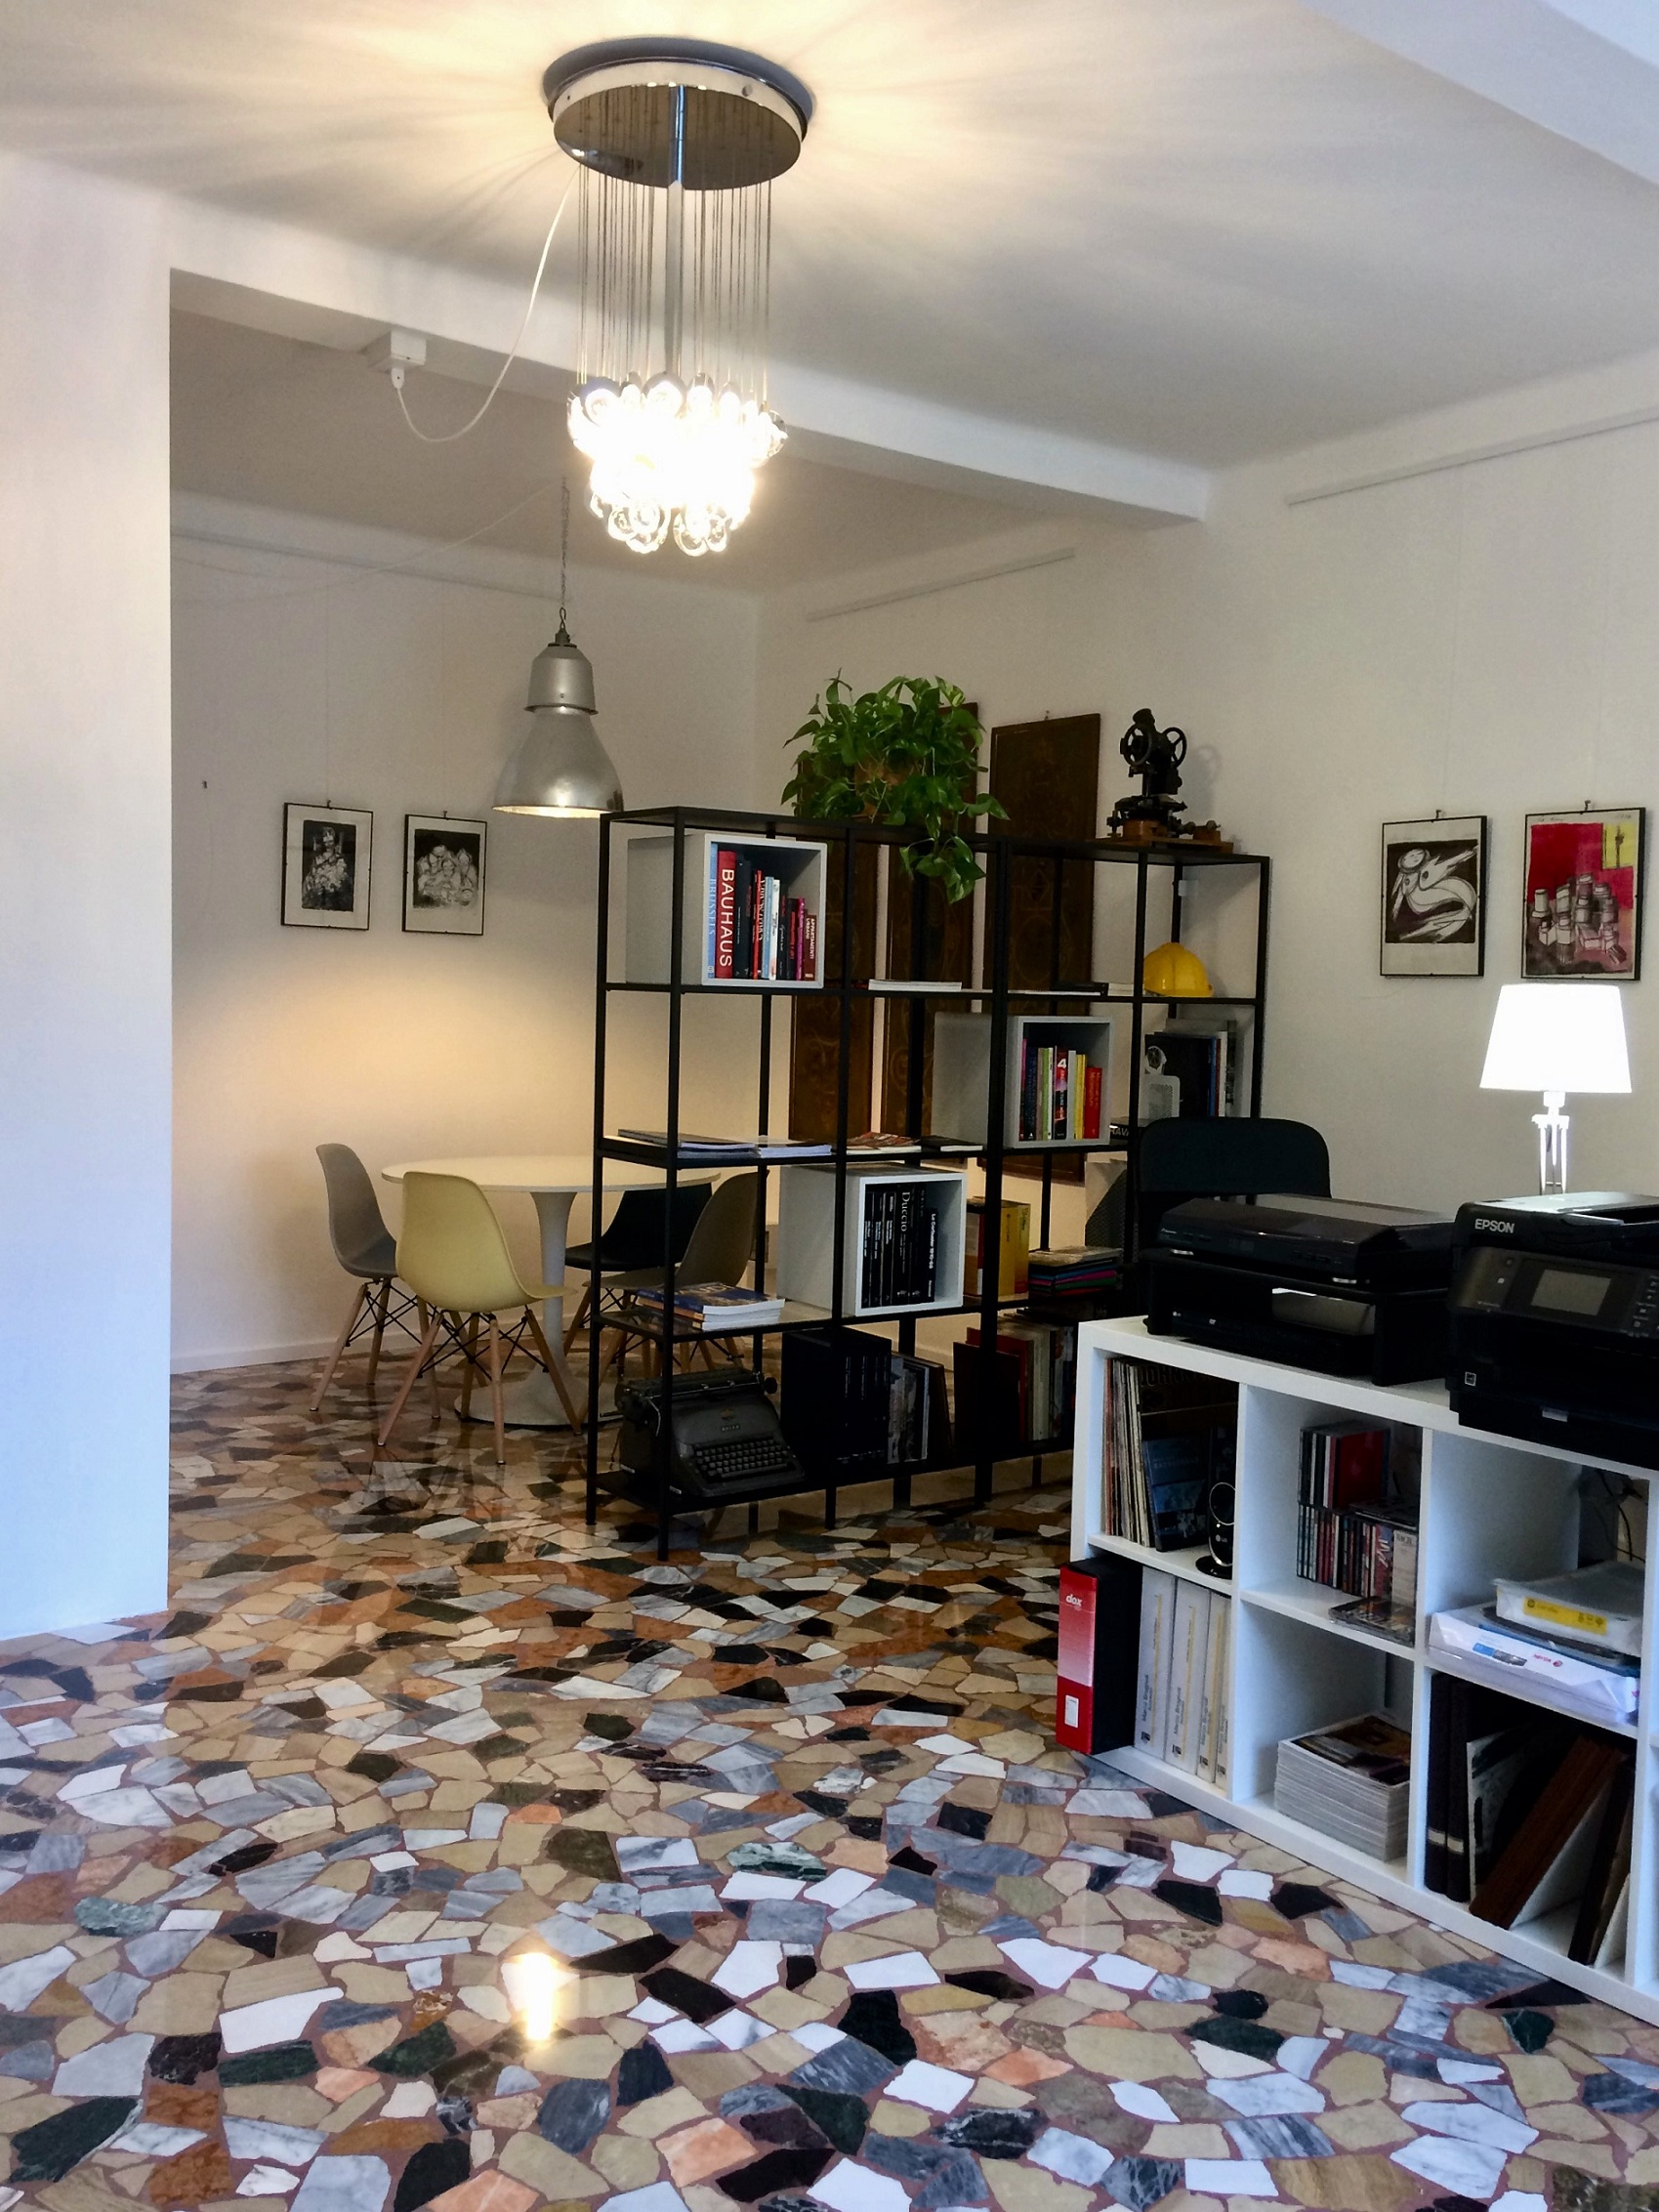 L'interno dello studio